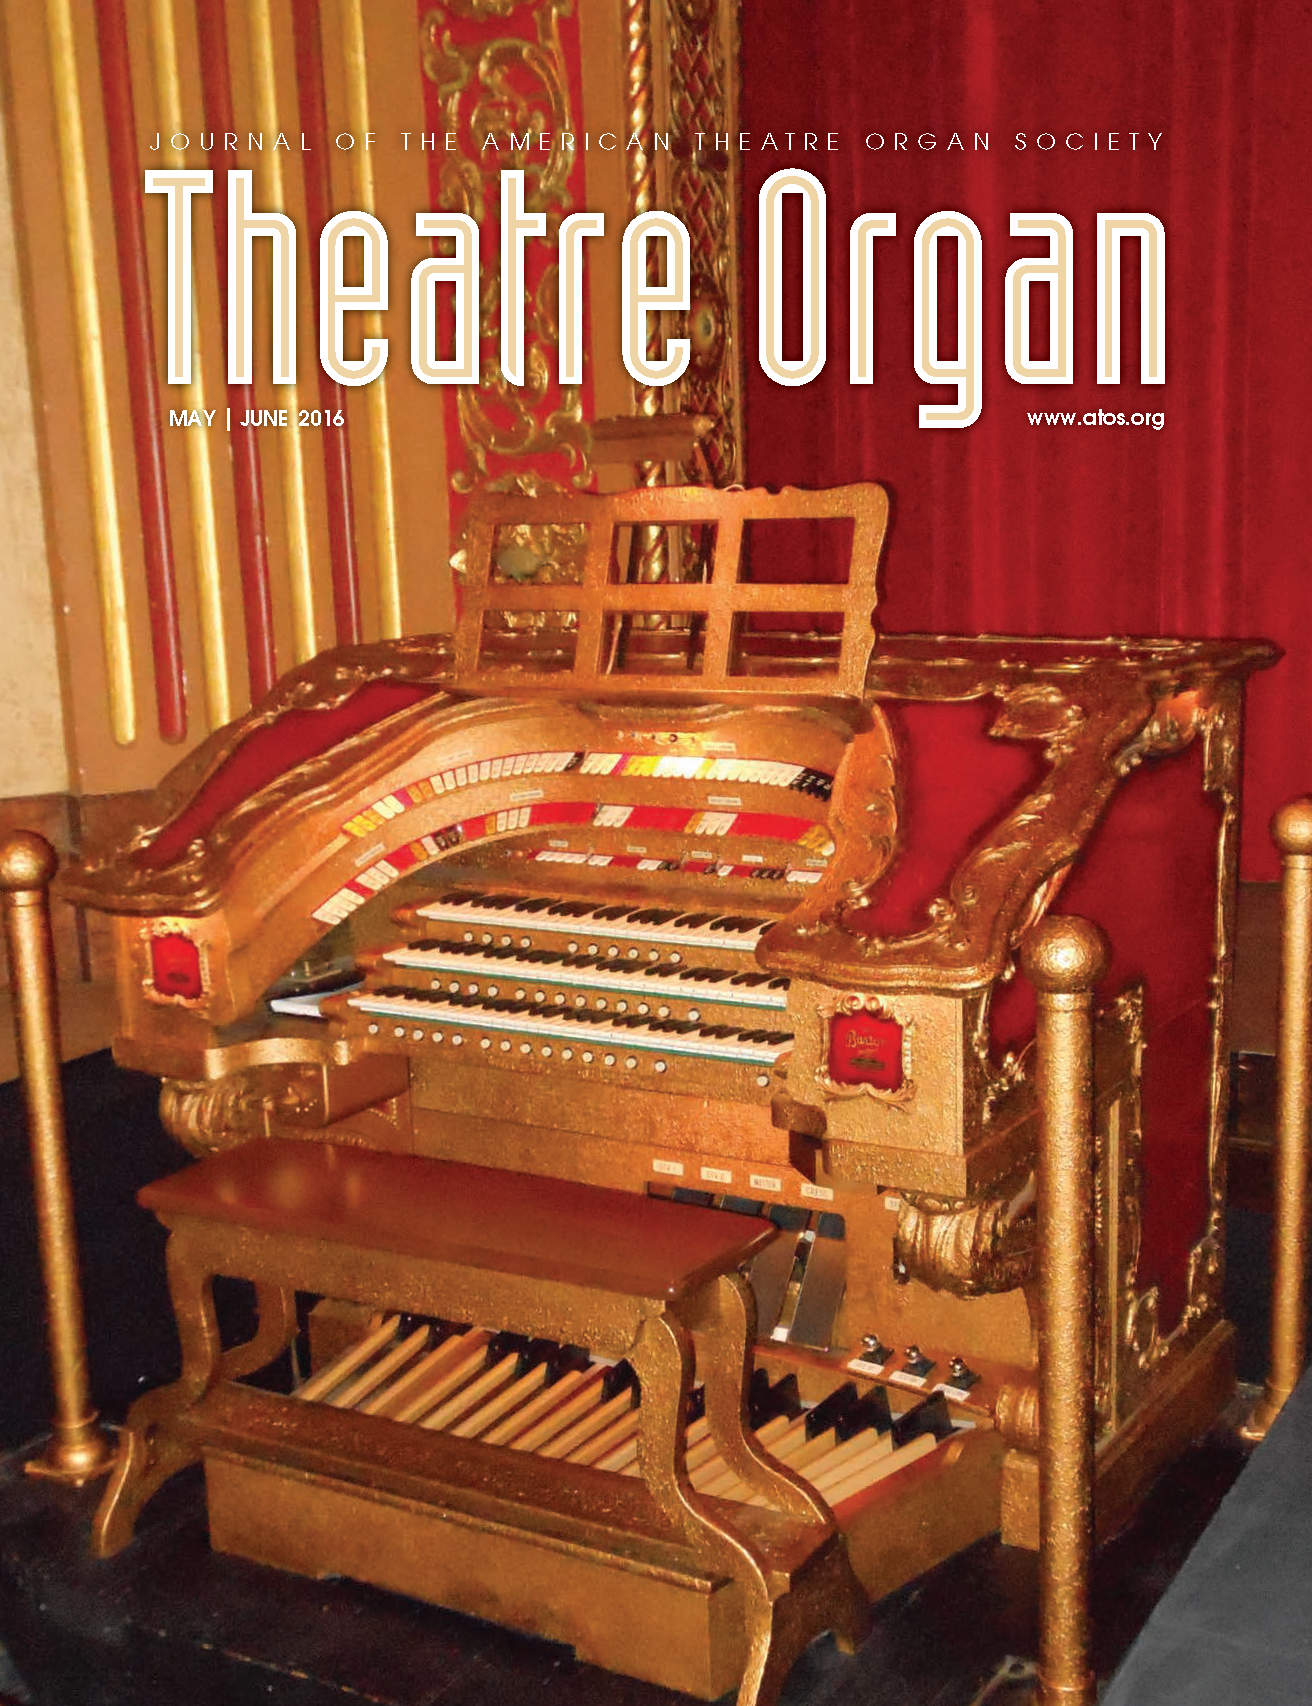 Theatre Organ, May - June 2016, Volume 58, Number 3